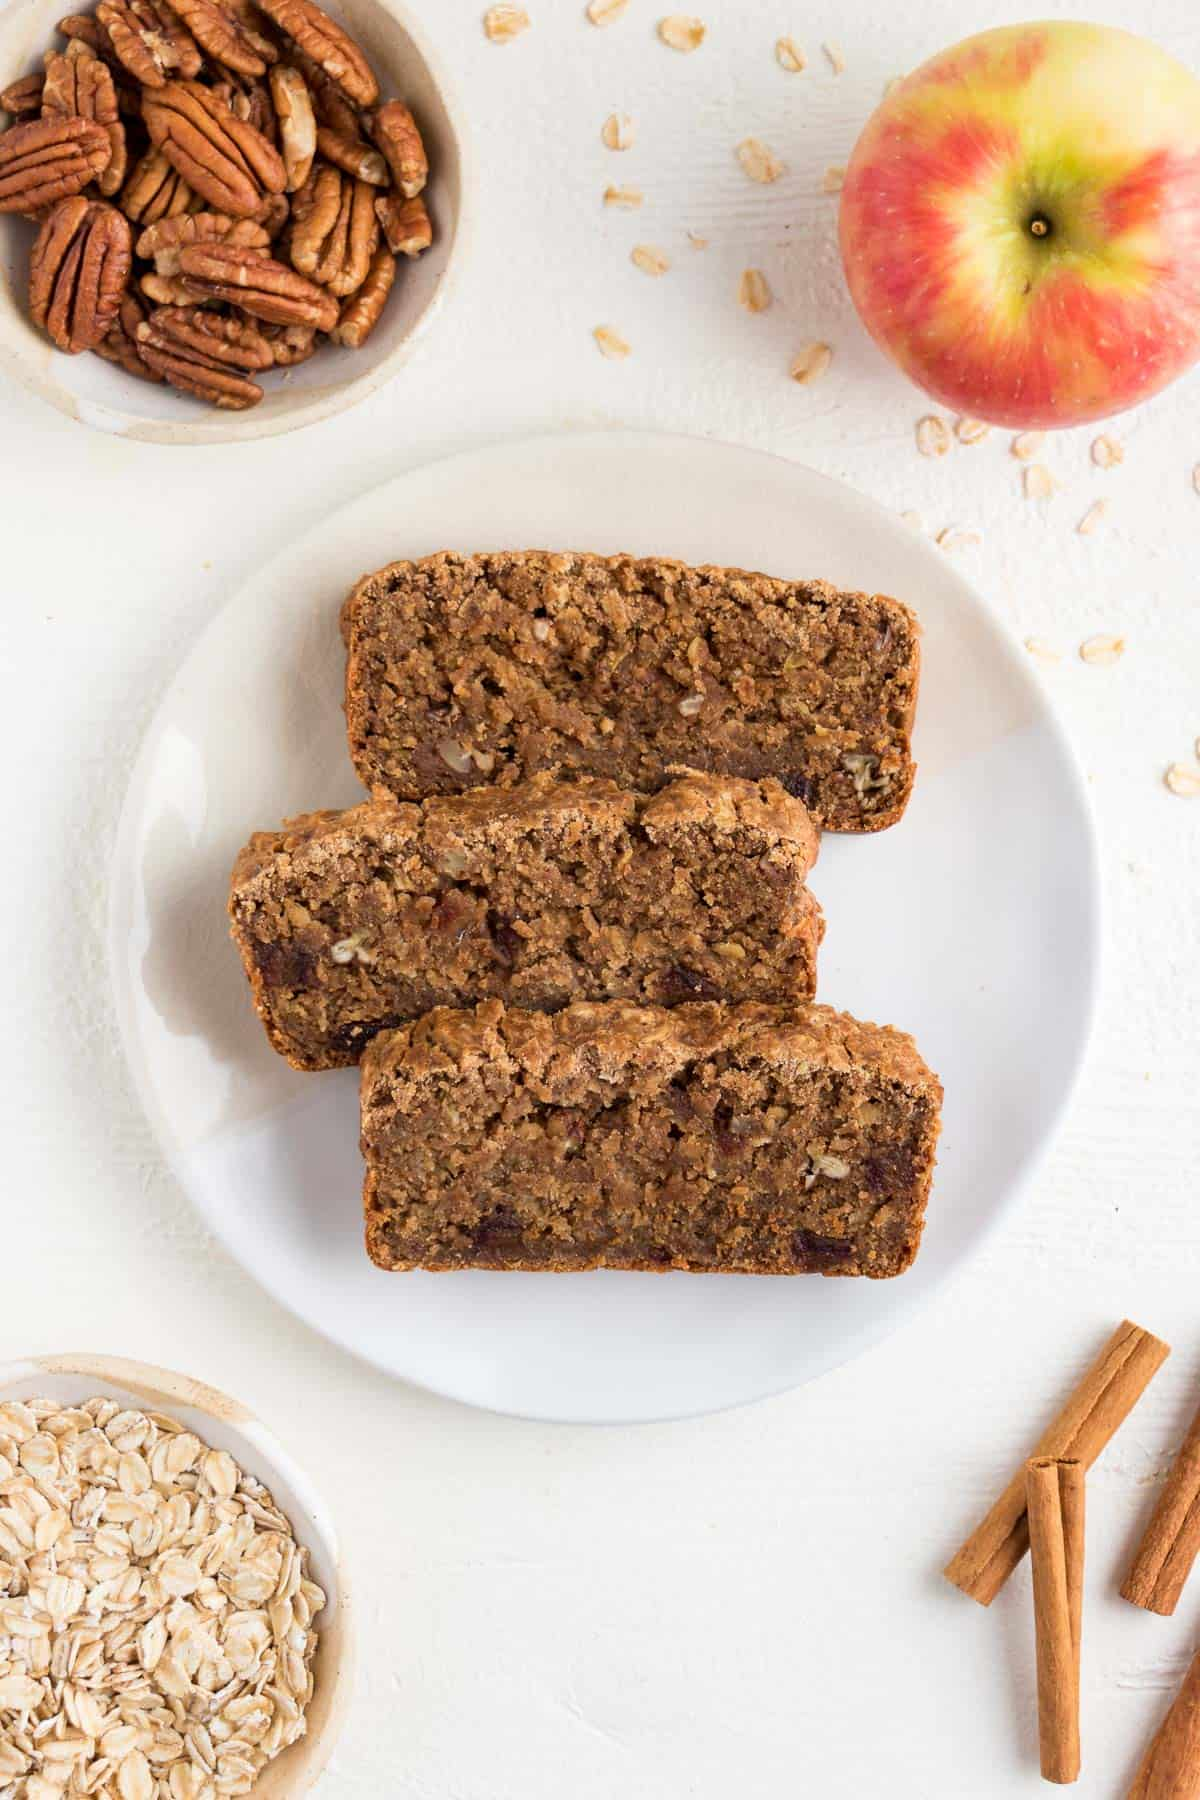 three slices of apple cinnamon bread on a white plate surrounded by cinnamon sticks, pecans, oats, and honeycrisp apple